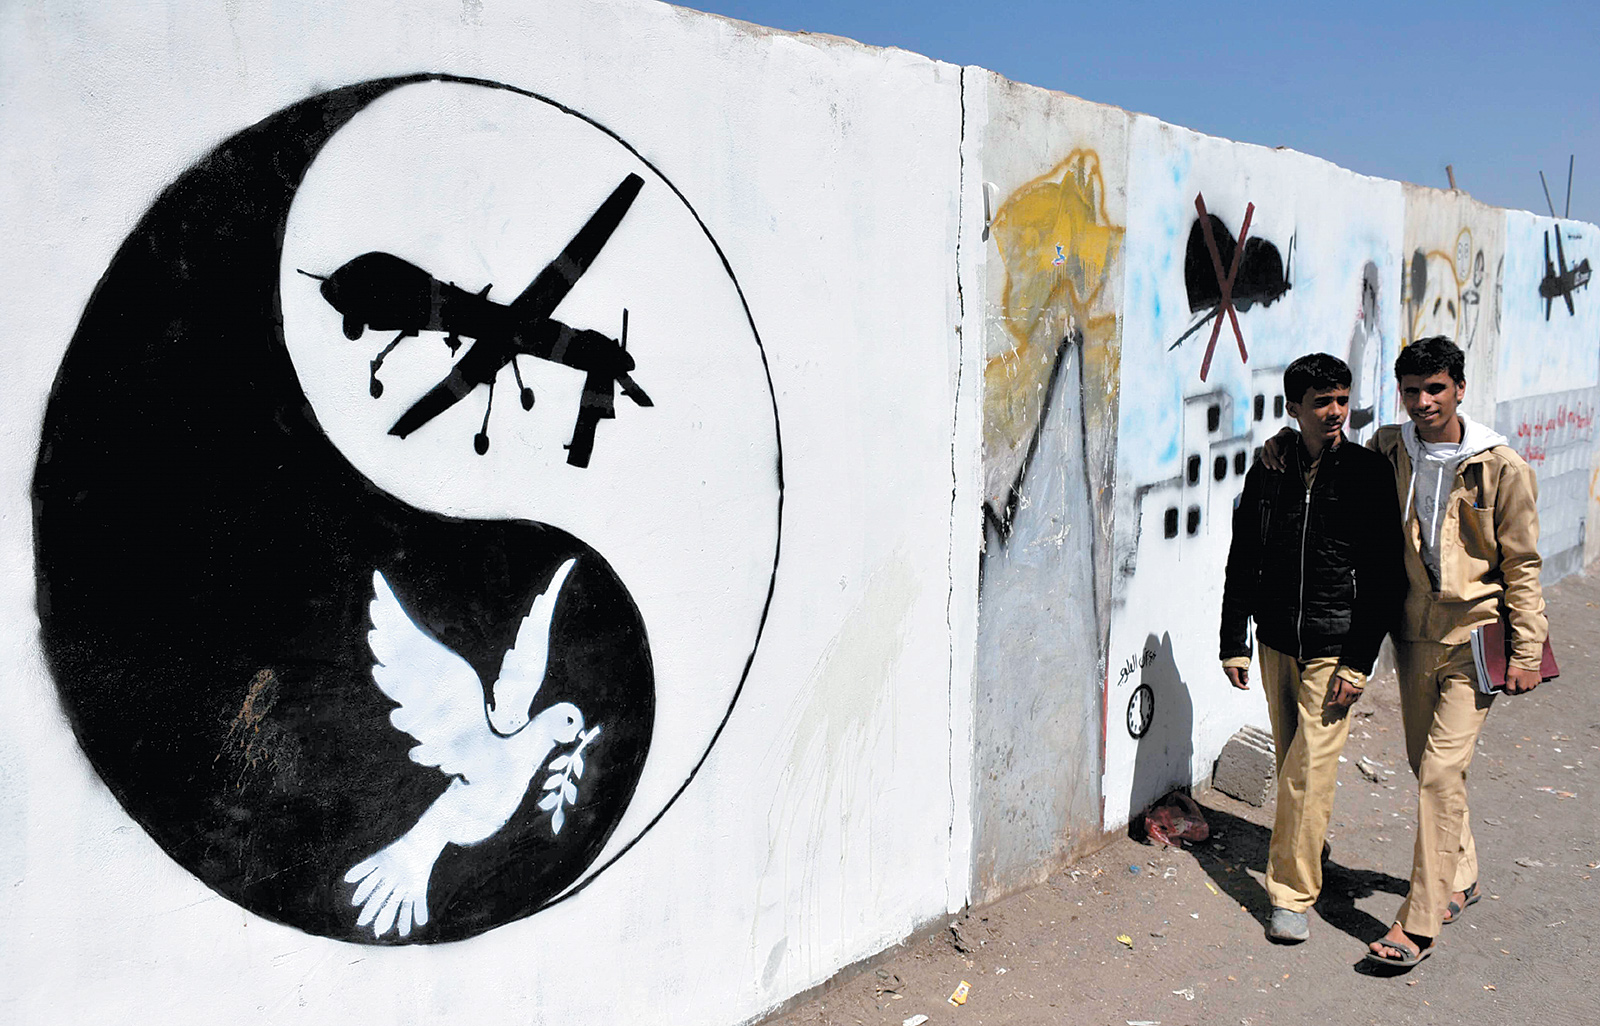 Anti-drone graffiti in Sanaa, Yemen, November 2013